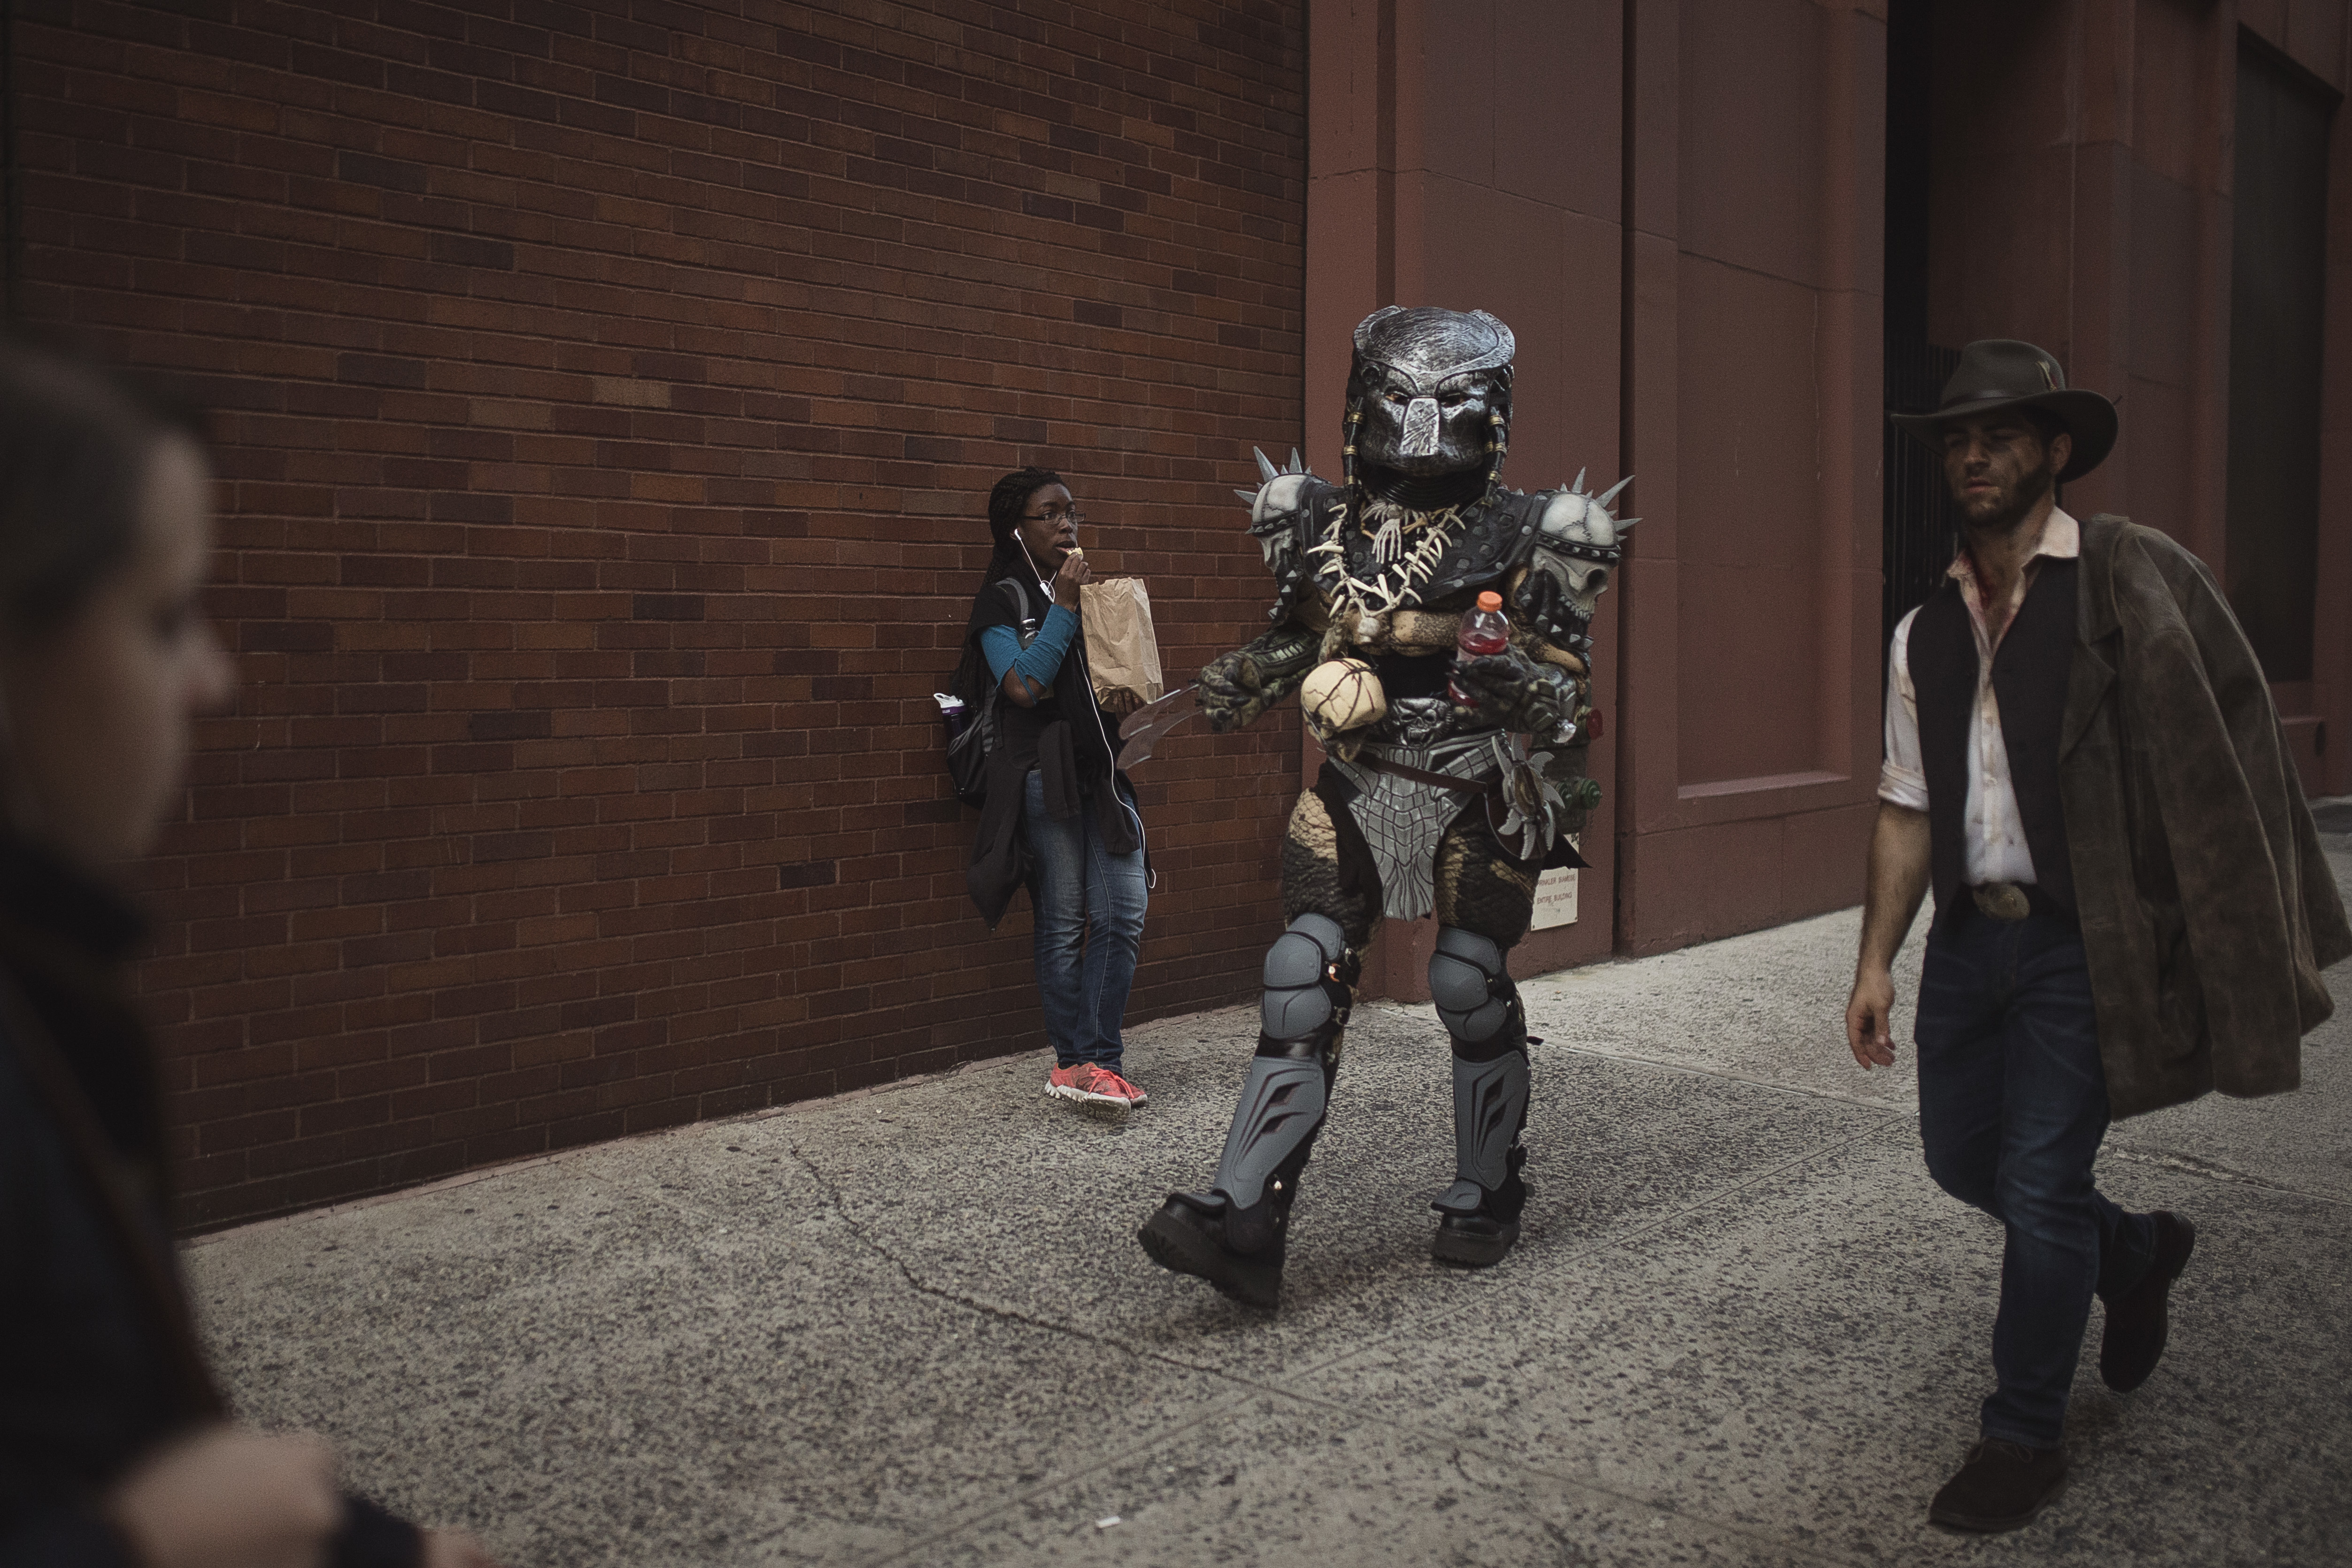 """<div class=""""meta image-caption""""><div class=""""origin-logo origin-image none""""><span>none</span></div><span class=""""caption-text"""">People wearing costumes walk near Washington Square Park before the Greenwich Village Halloween Parade in New York, Monday, Oct. 31, 2016. (AP Photo/Andres Kudacki)</span></div>"""